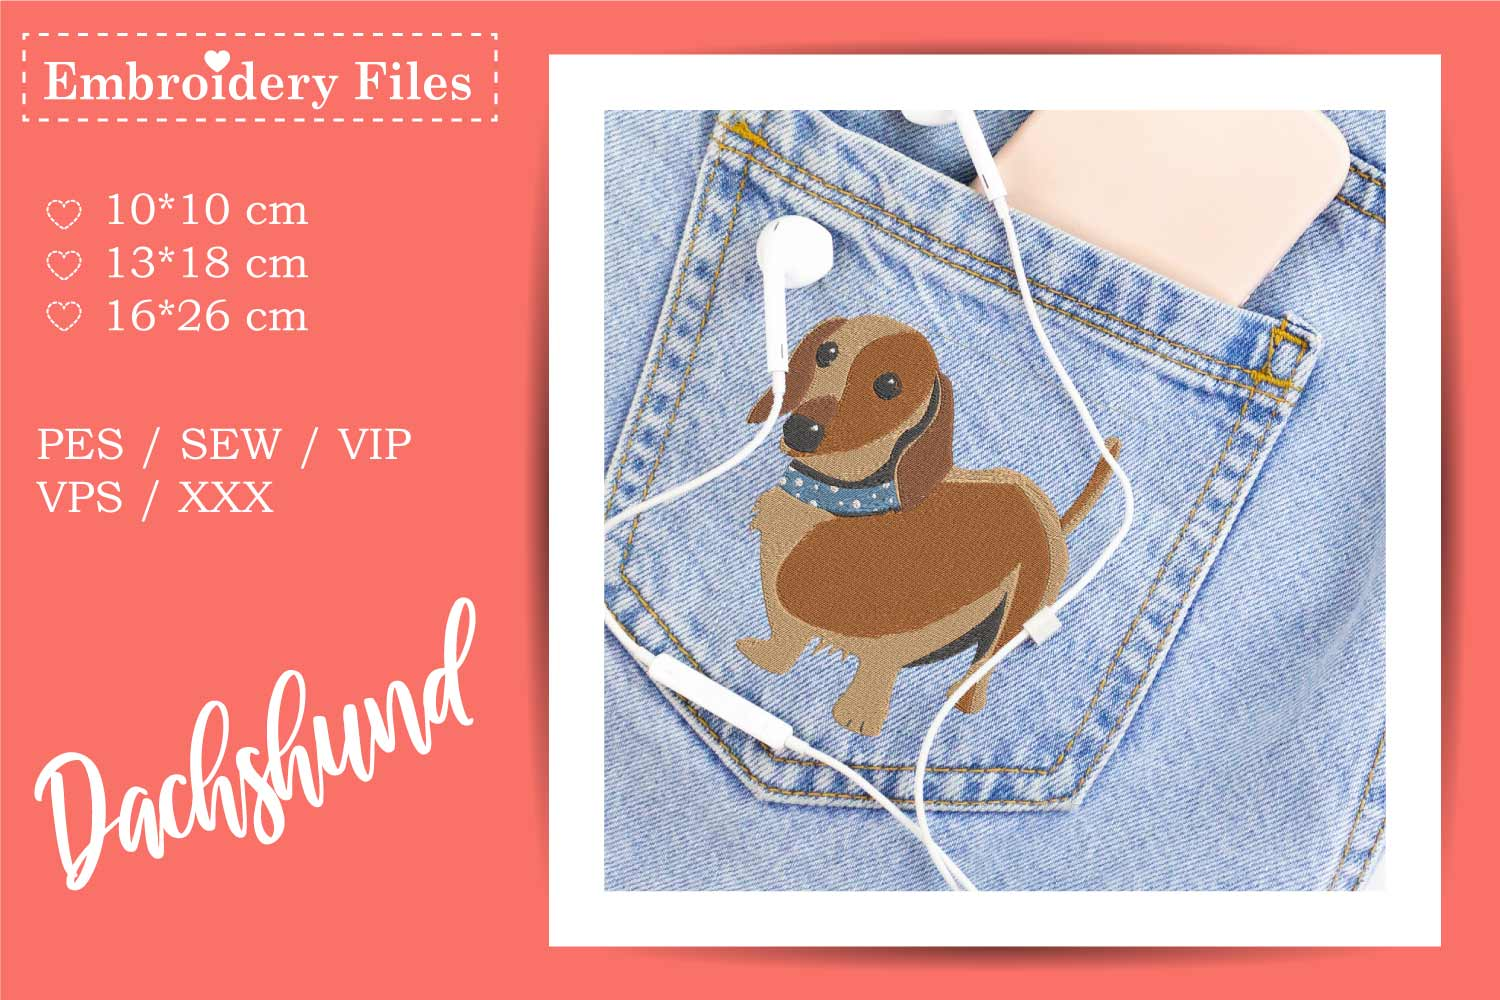 Cute Dachshund - Embroidery File for Beginners example image 2